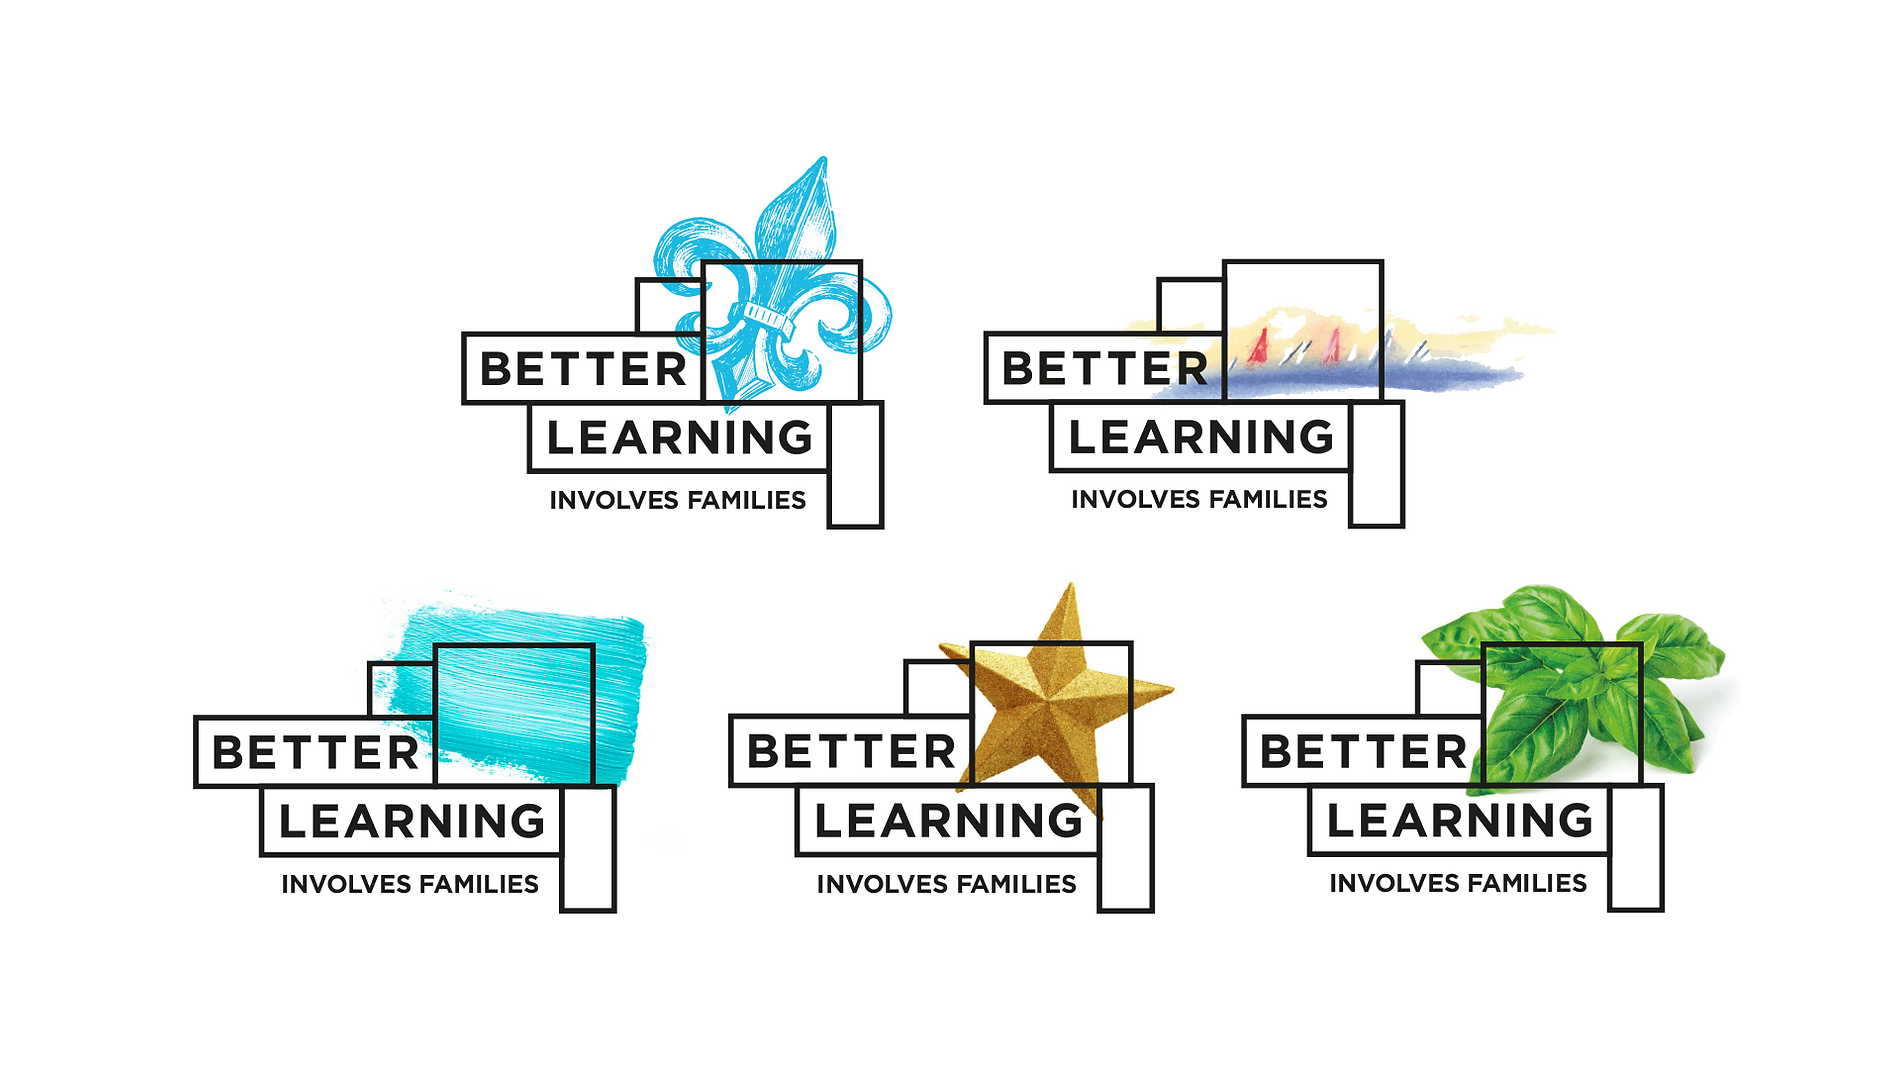 BETTER LEARNING 3.png